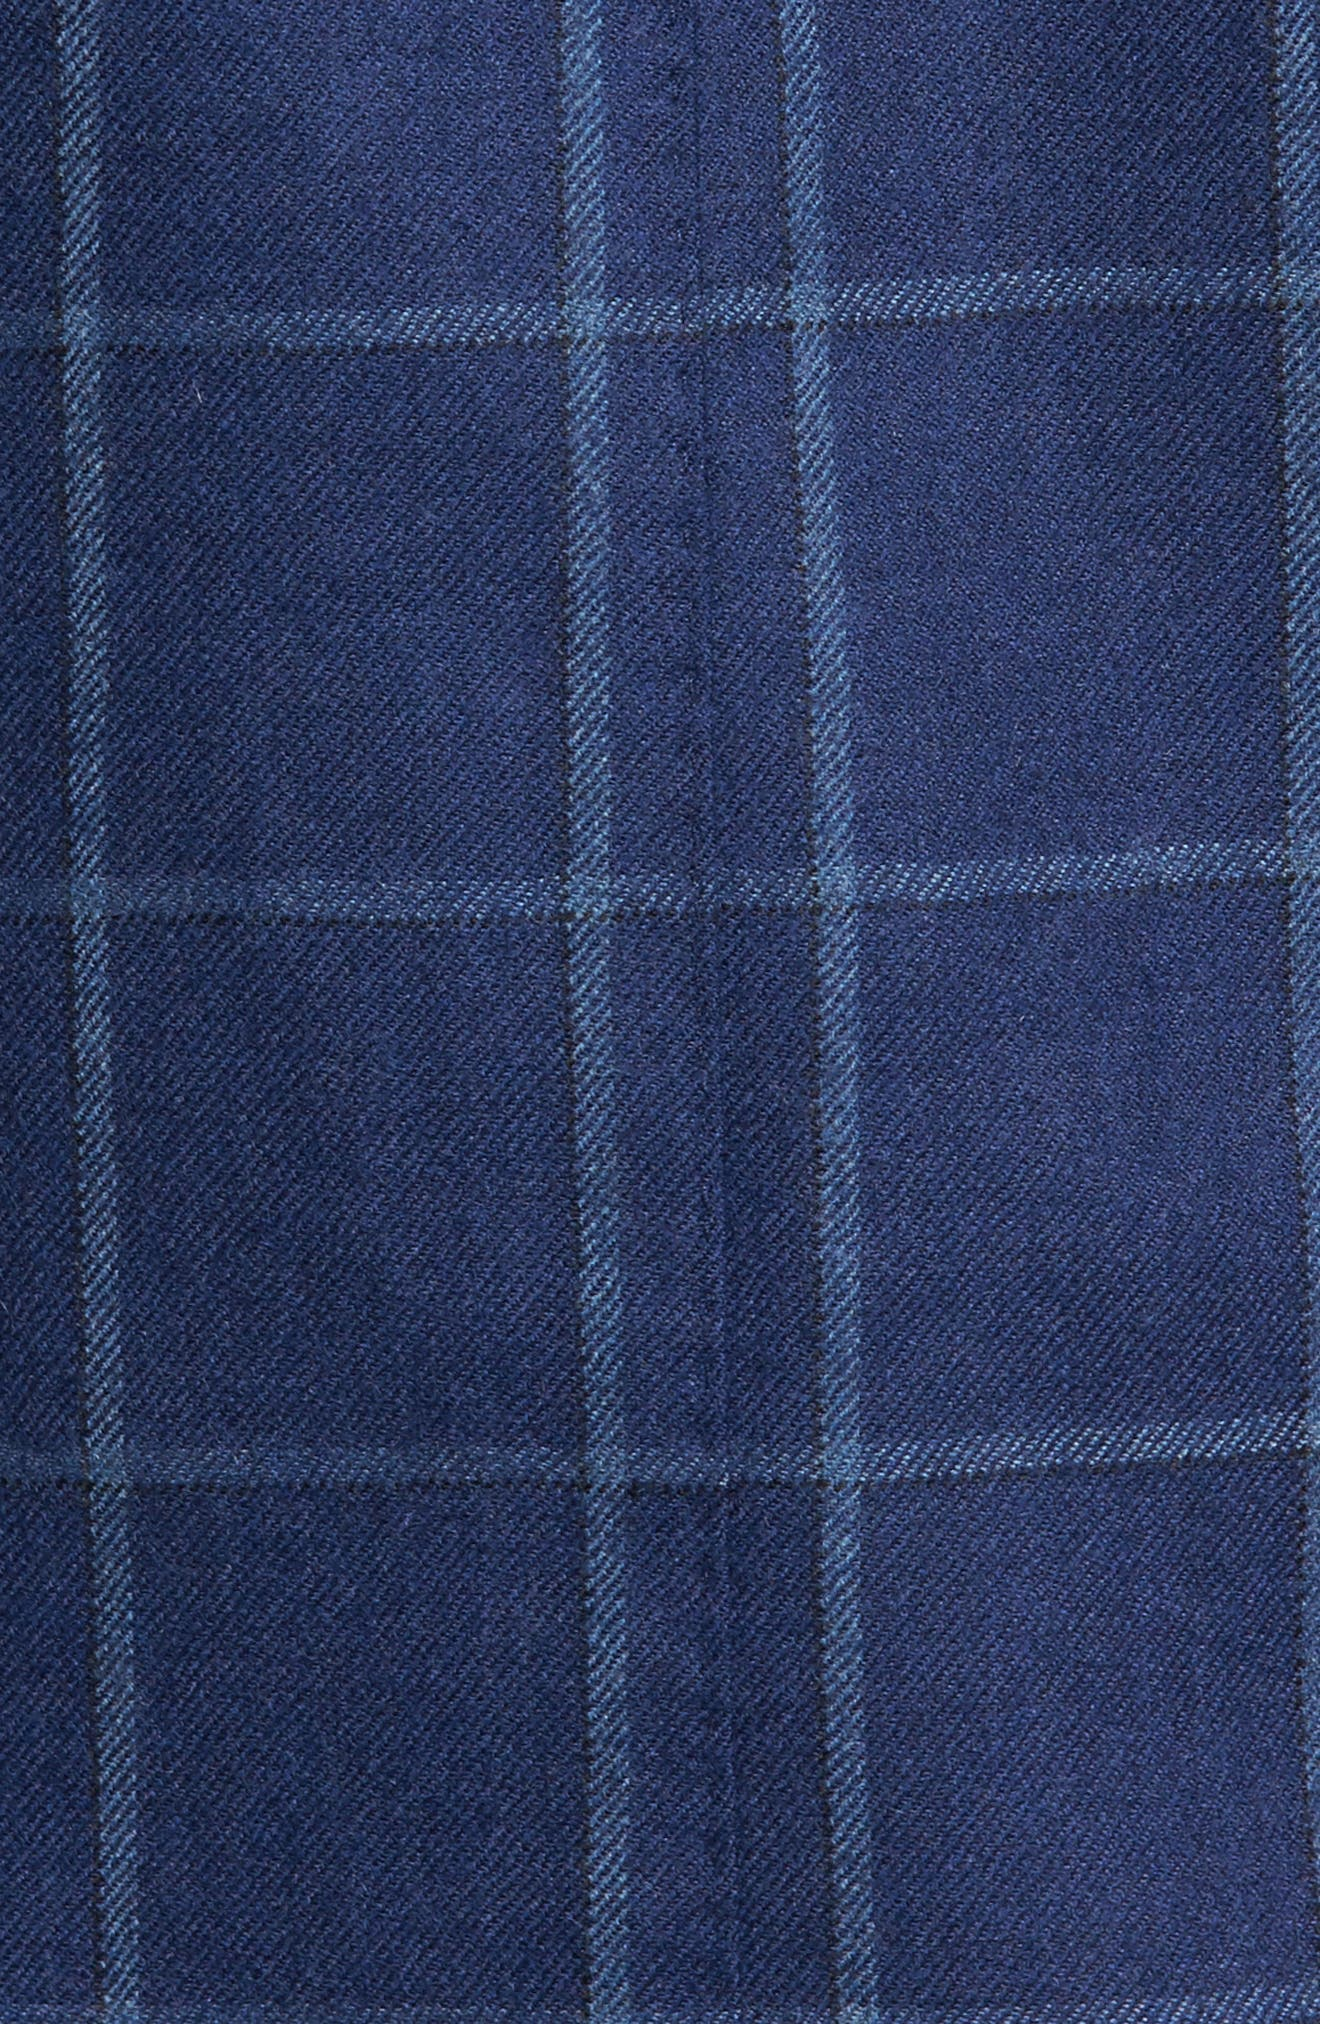 Windowpane Wool Blazer,                             Alternate thumbnail 9, color,                             Navy